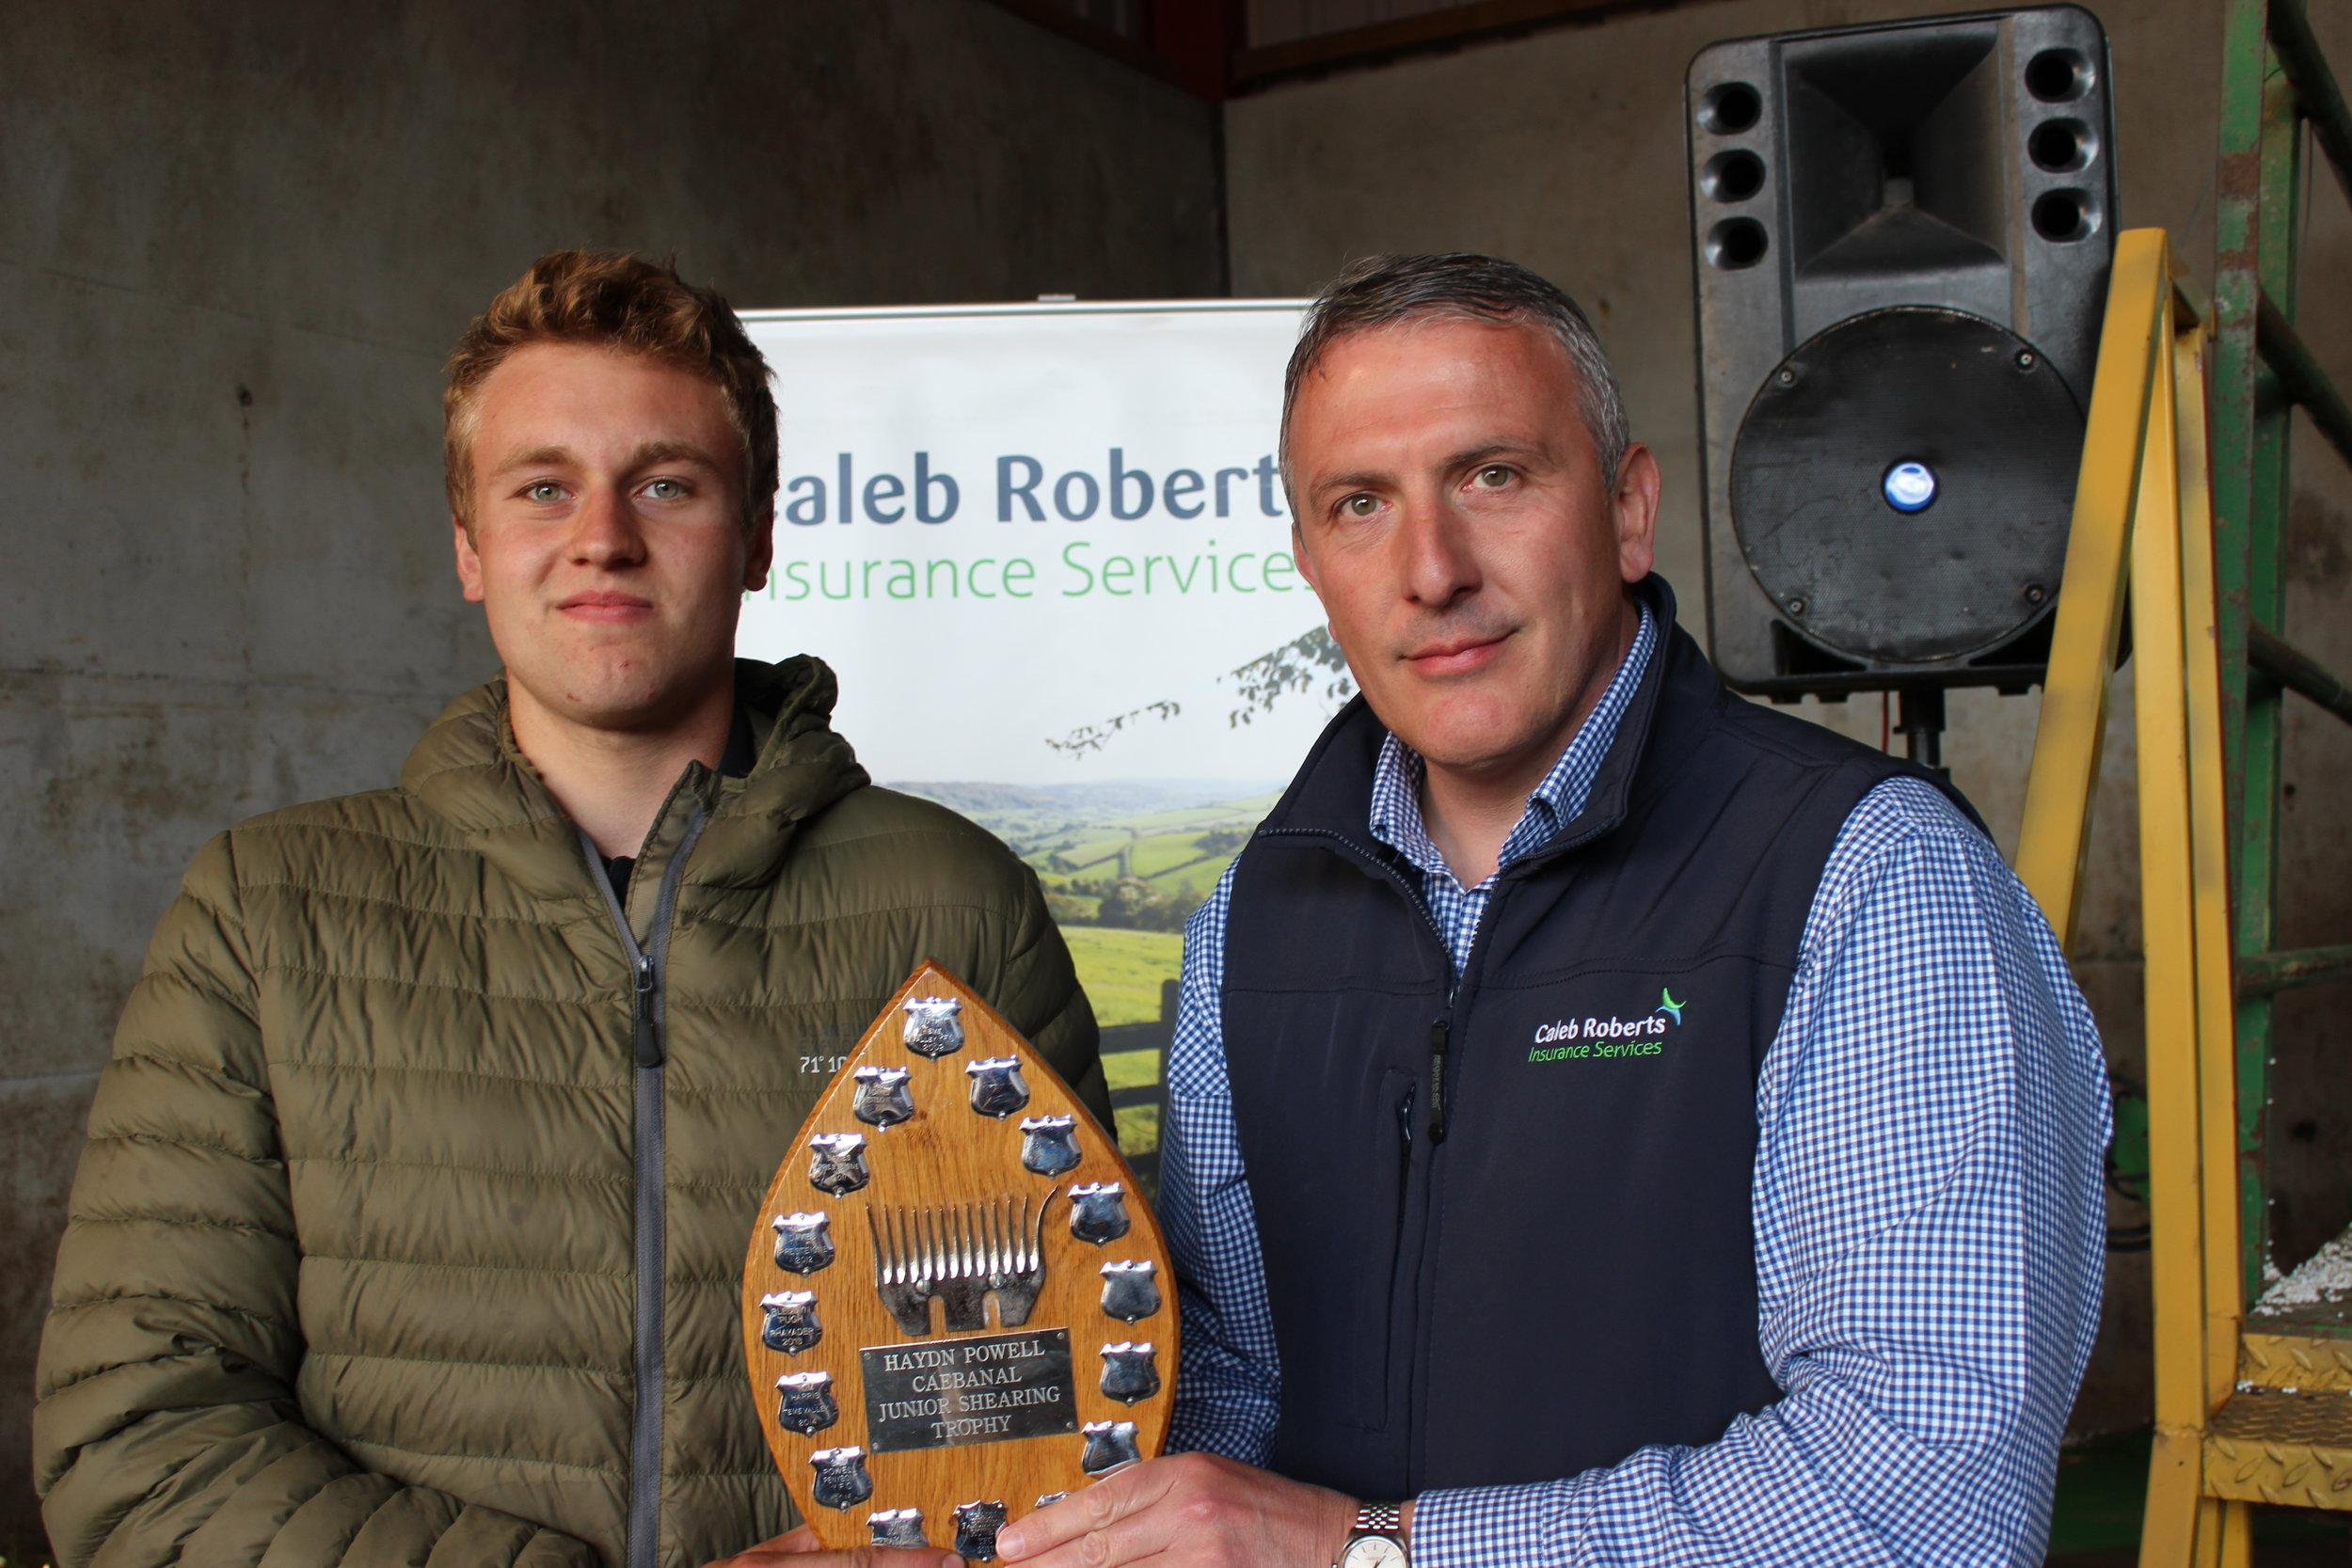 Philip Price, Radnor Valley YFC - Haydn Powell Trophy for the Junior Shearing being presented by Hugh Campbell, Caleb Roberts.